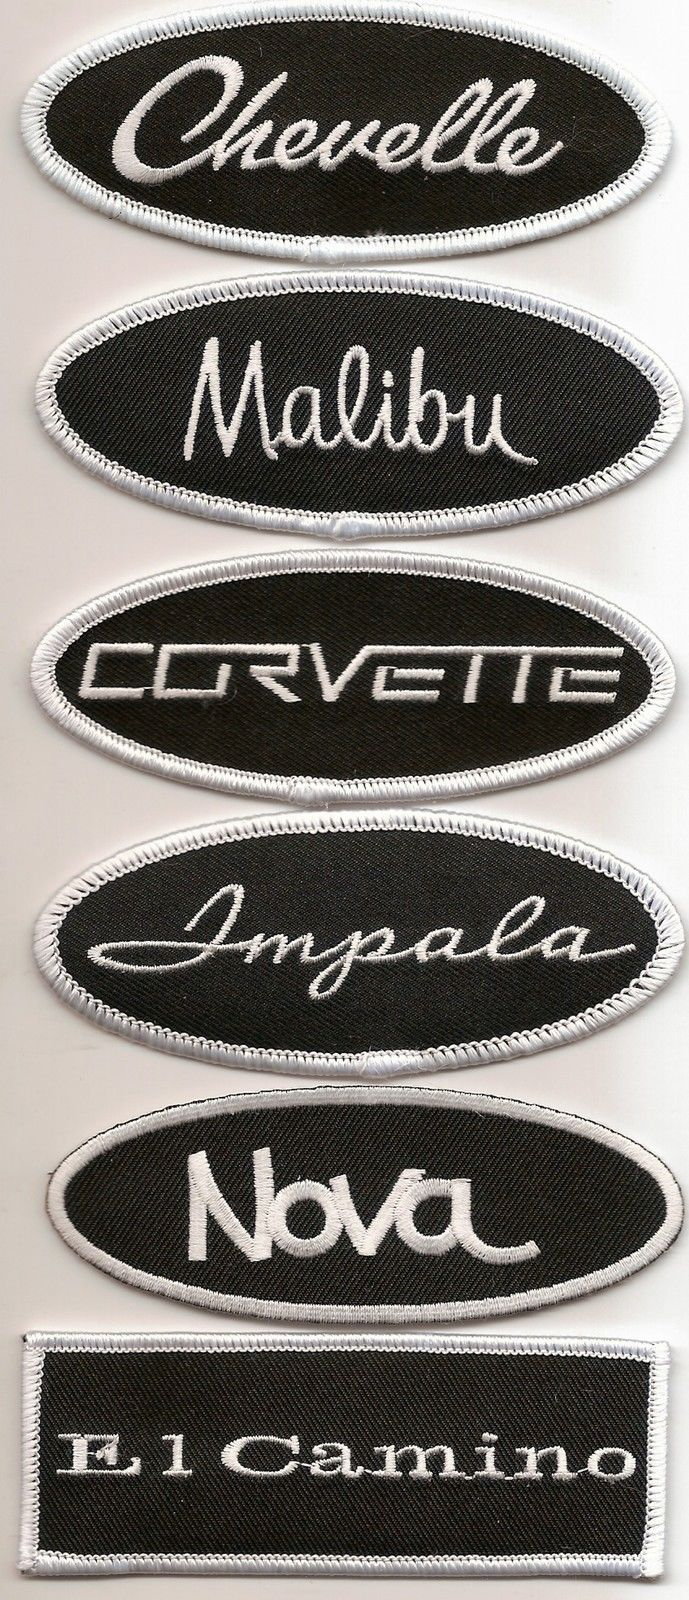 Chevy Ss Chevelle Sewiron On Patch Emblem And 50 Similar Items